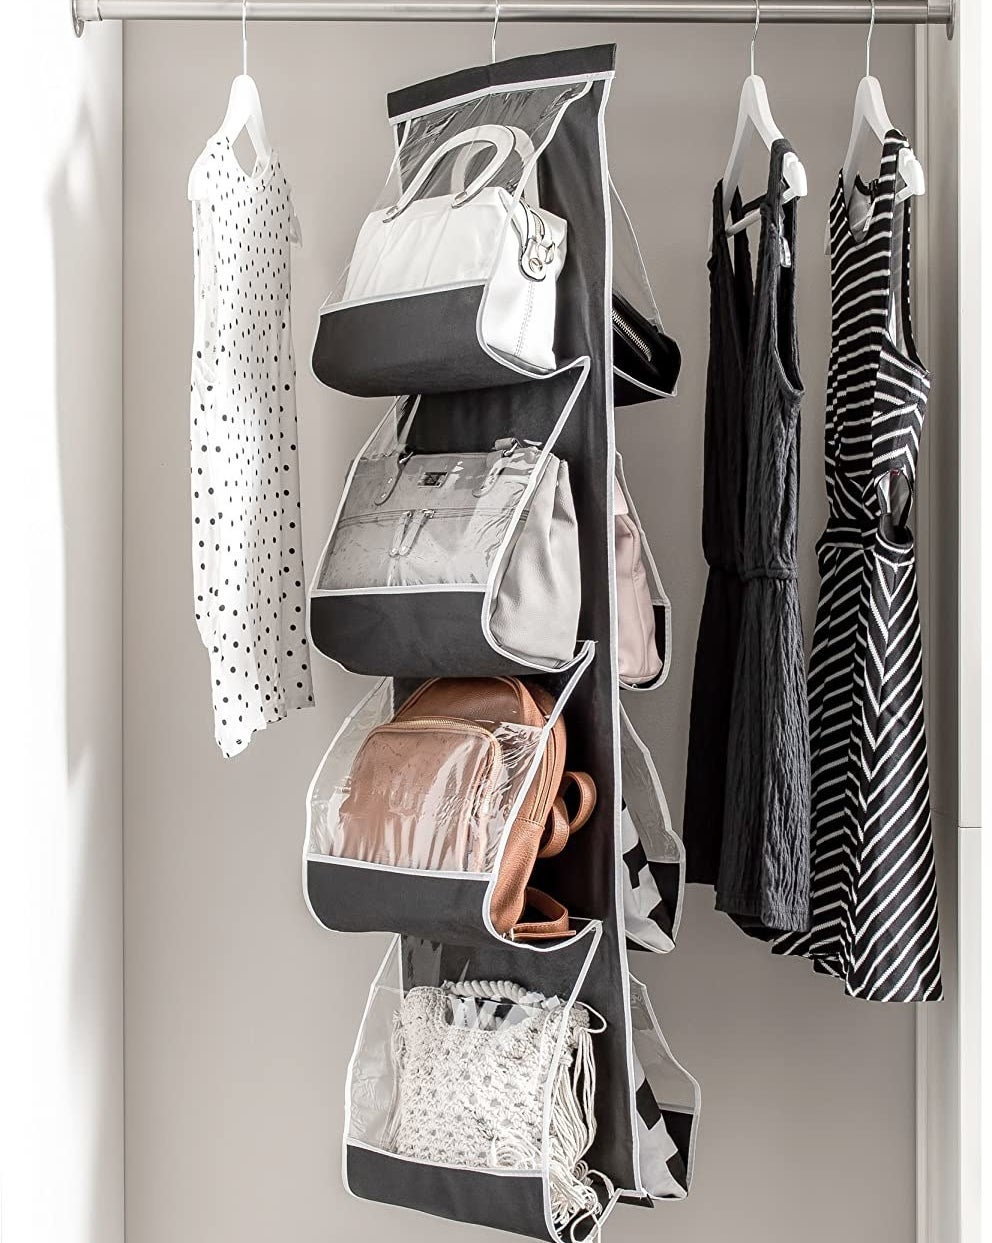 A long fabric handbag organizer hanging from a clothing rod It has four pockets on each side and are filled with large handbags